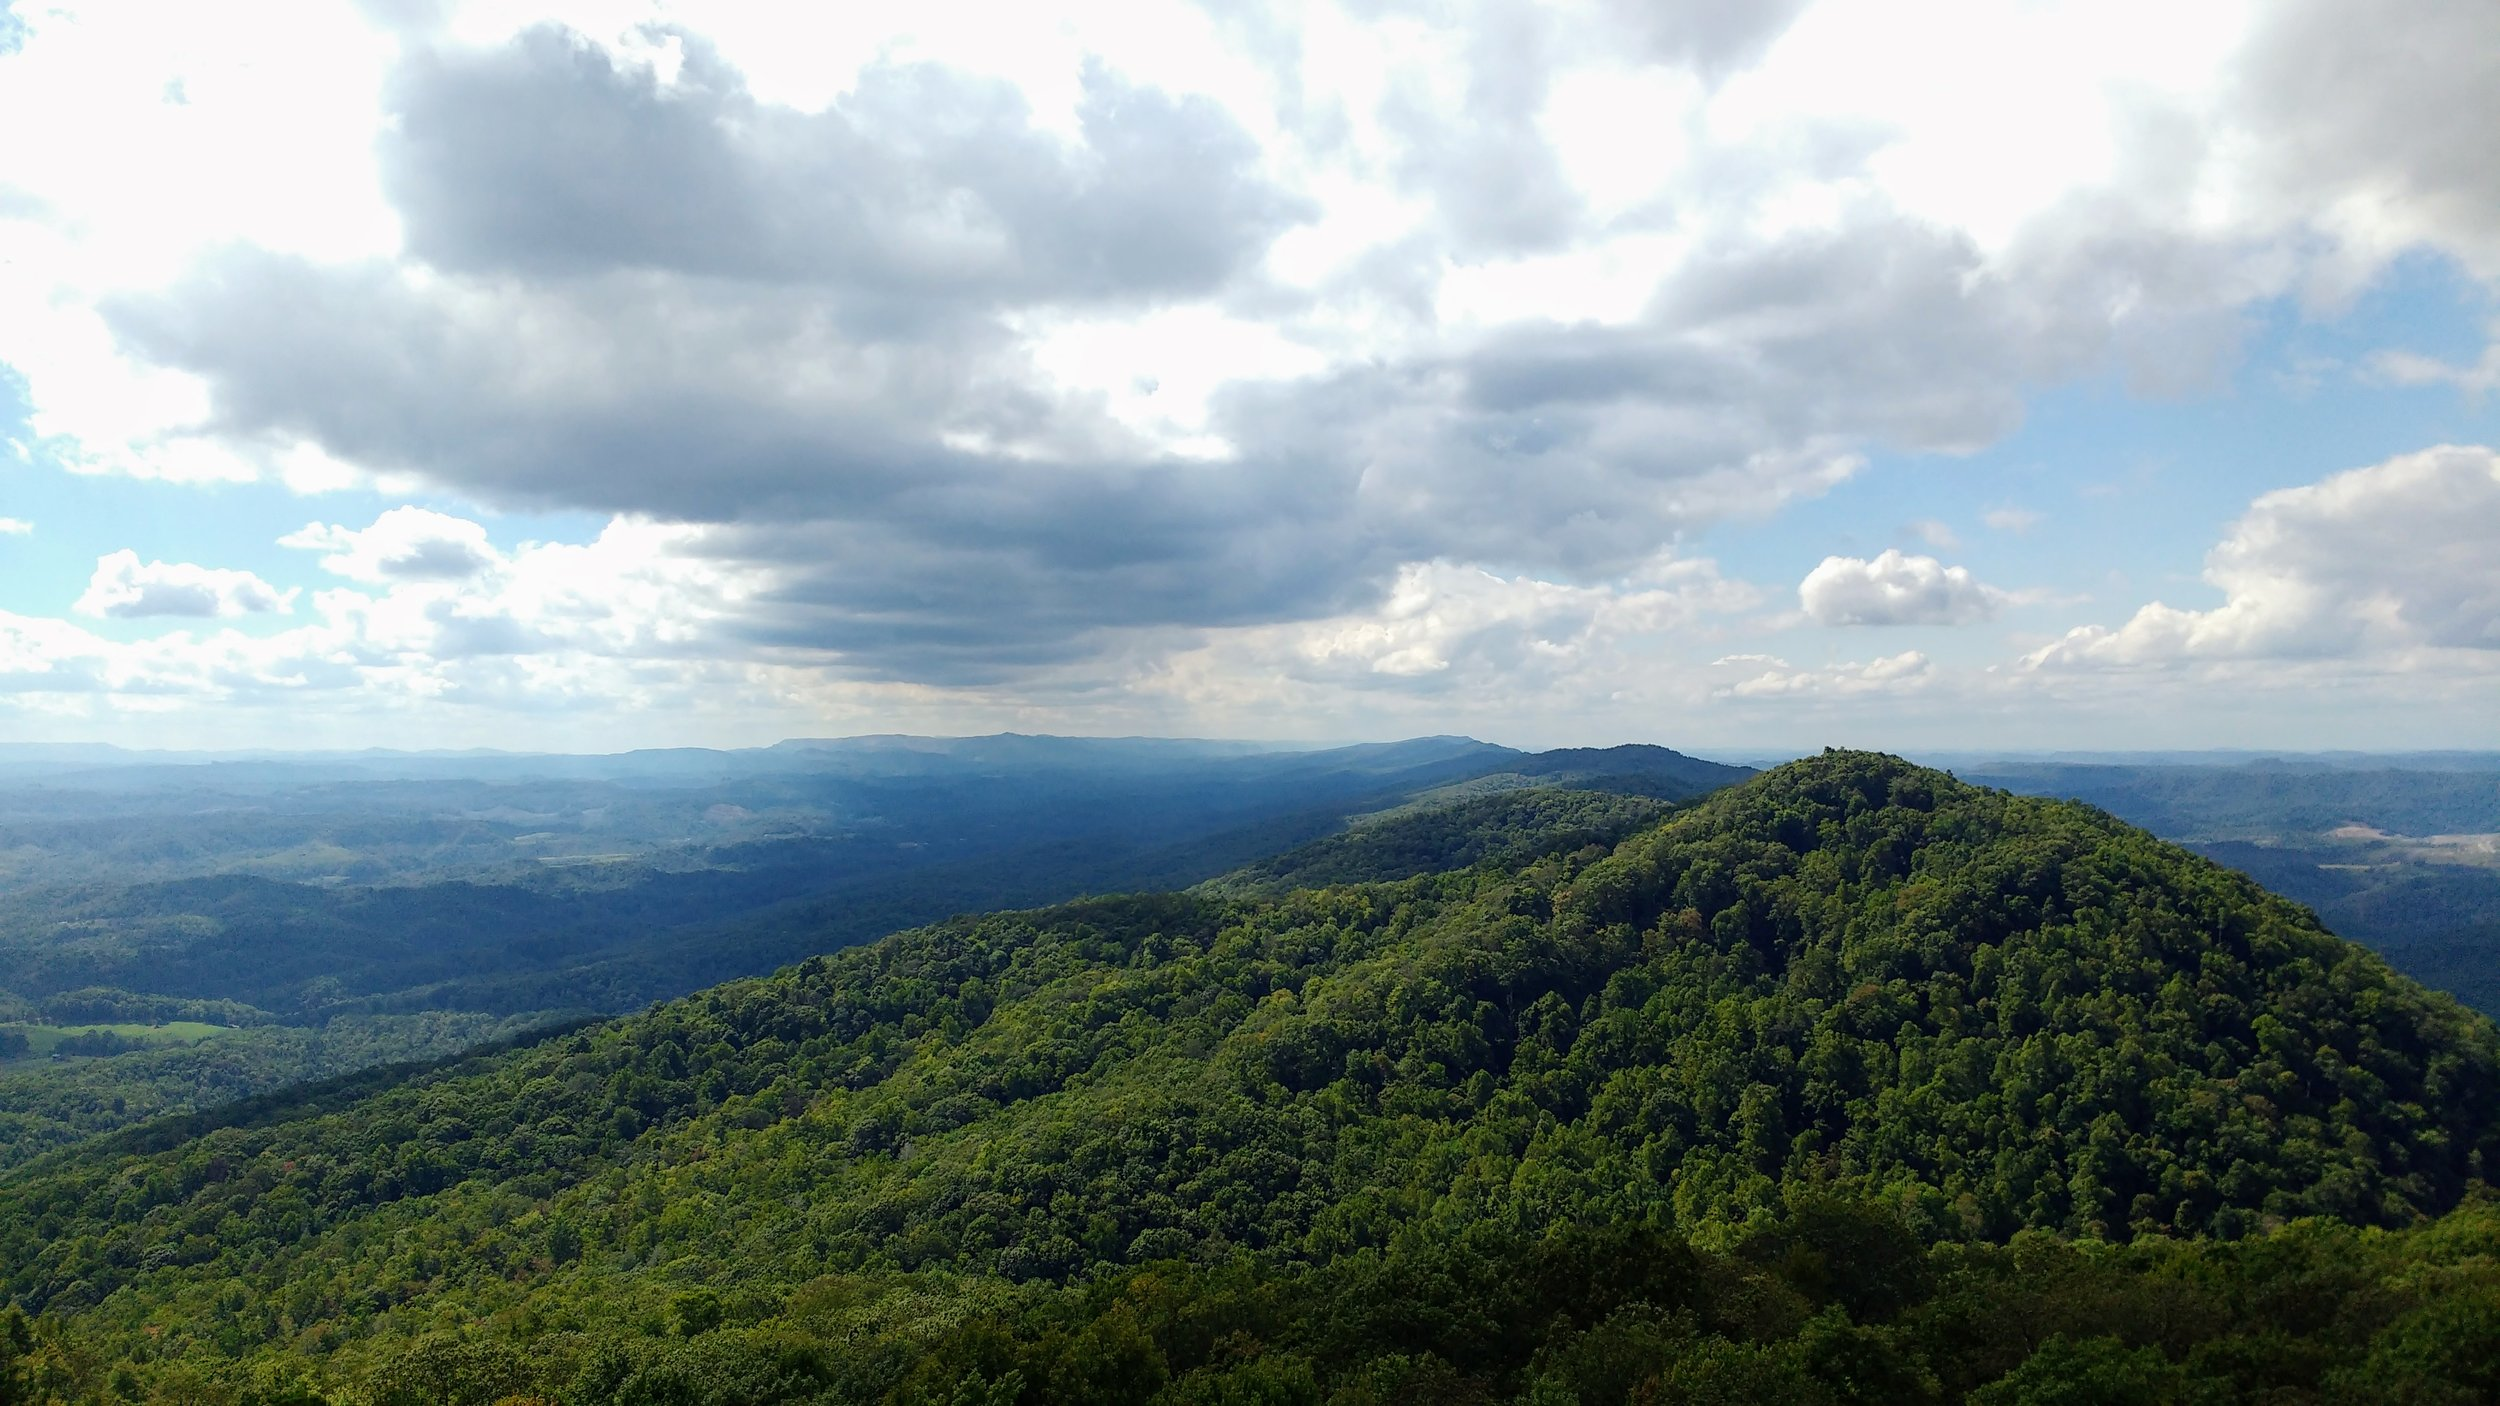 Looking out over Pine Mountain